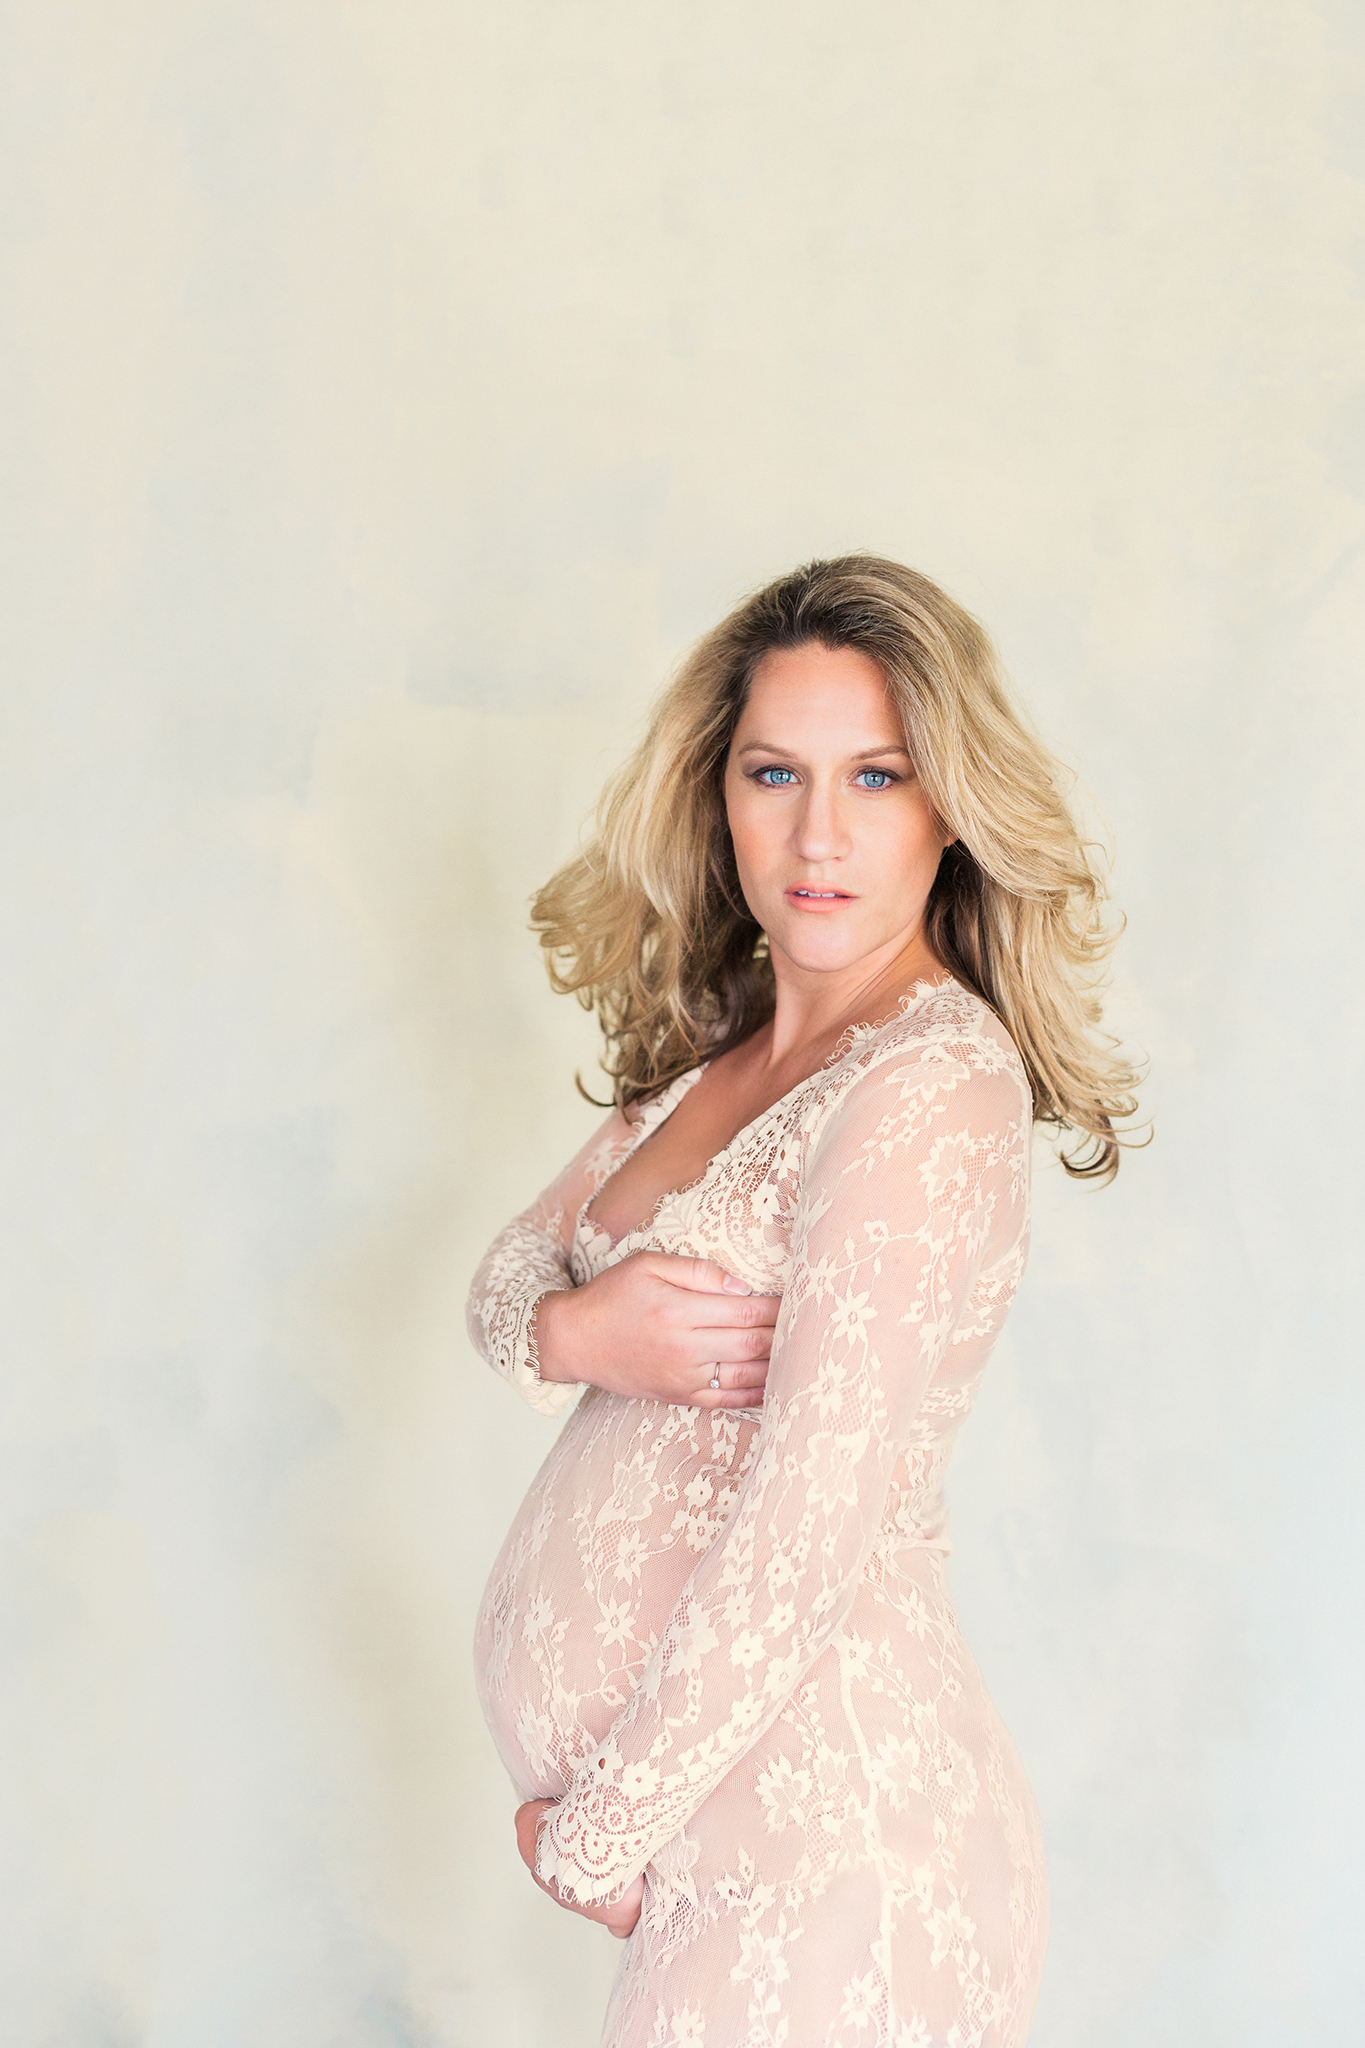 Stefanie-Archer-Maternity-Session.jpg